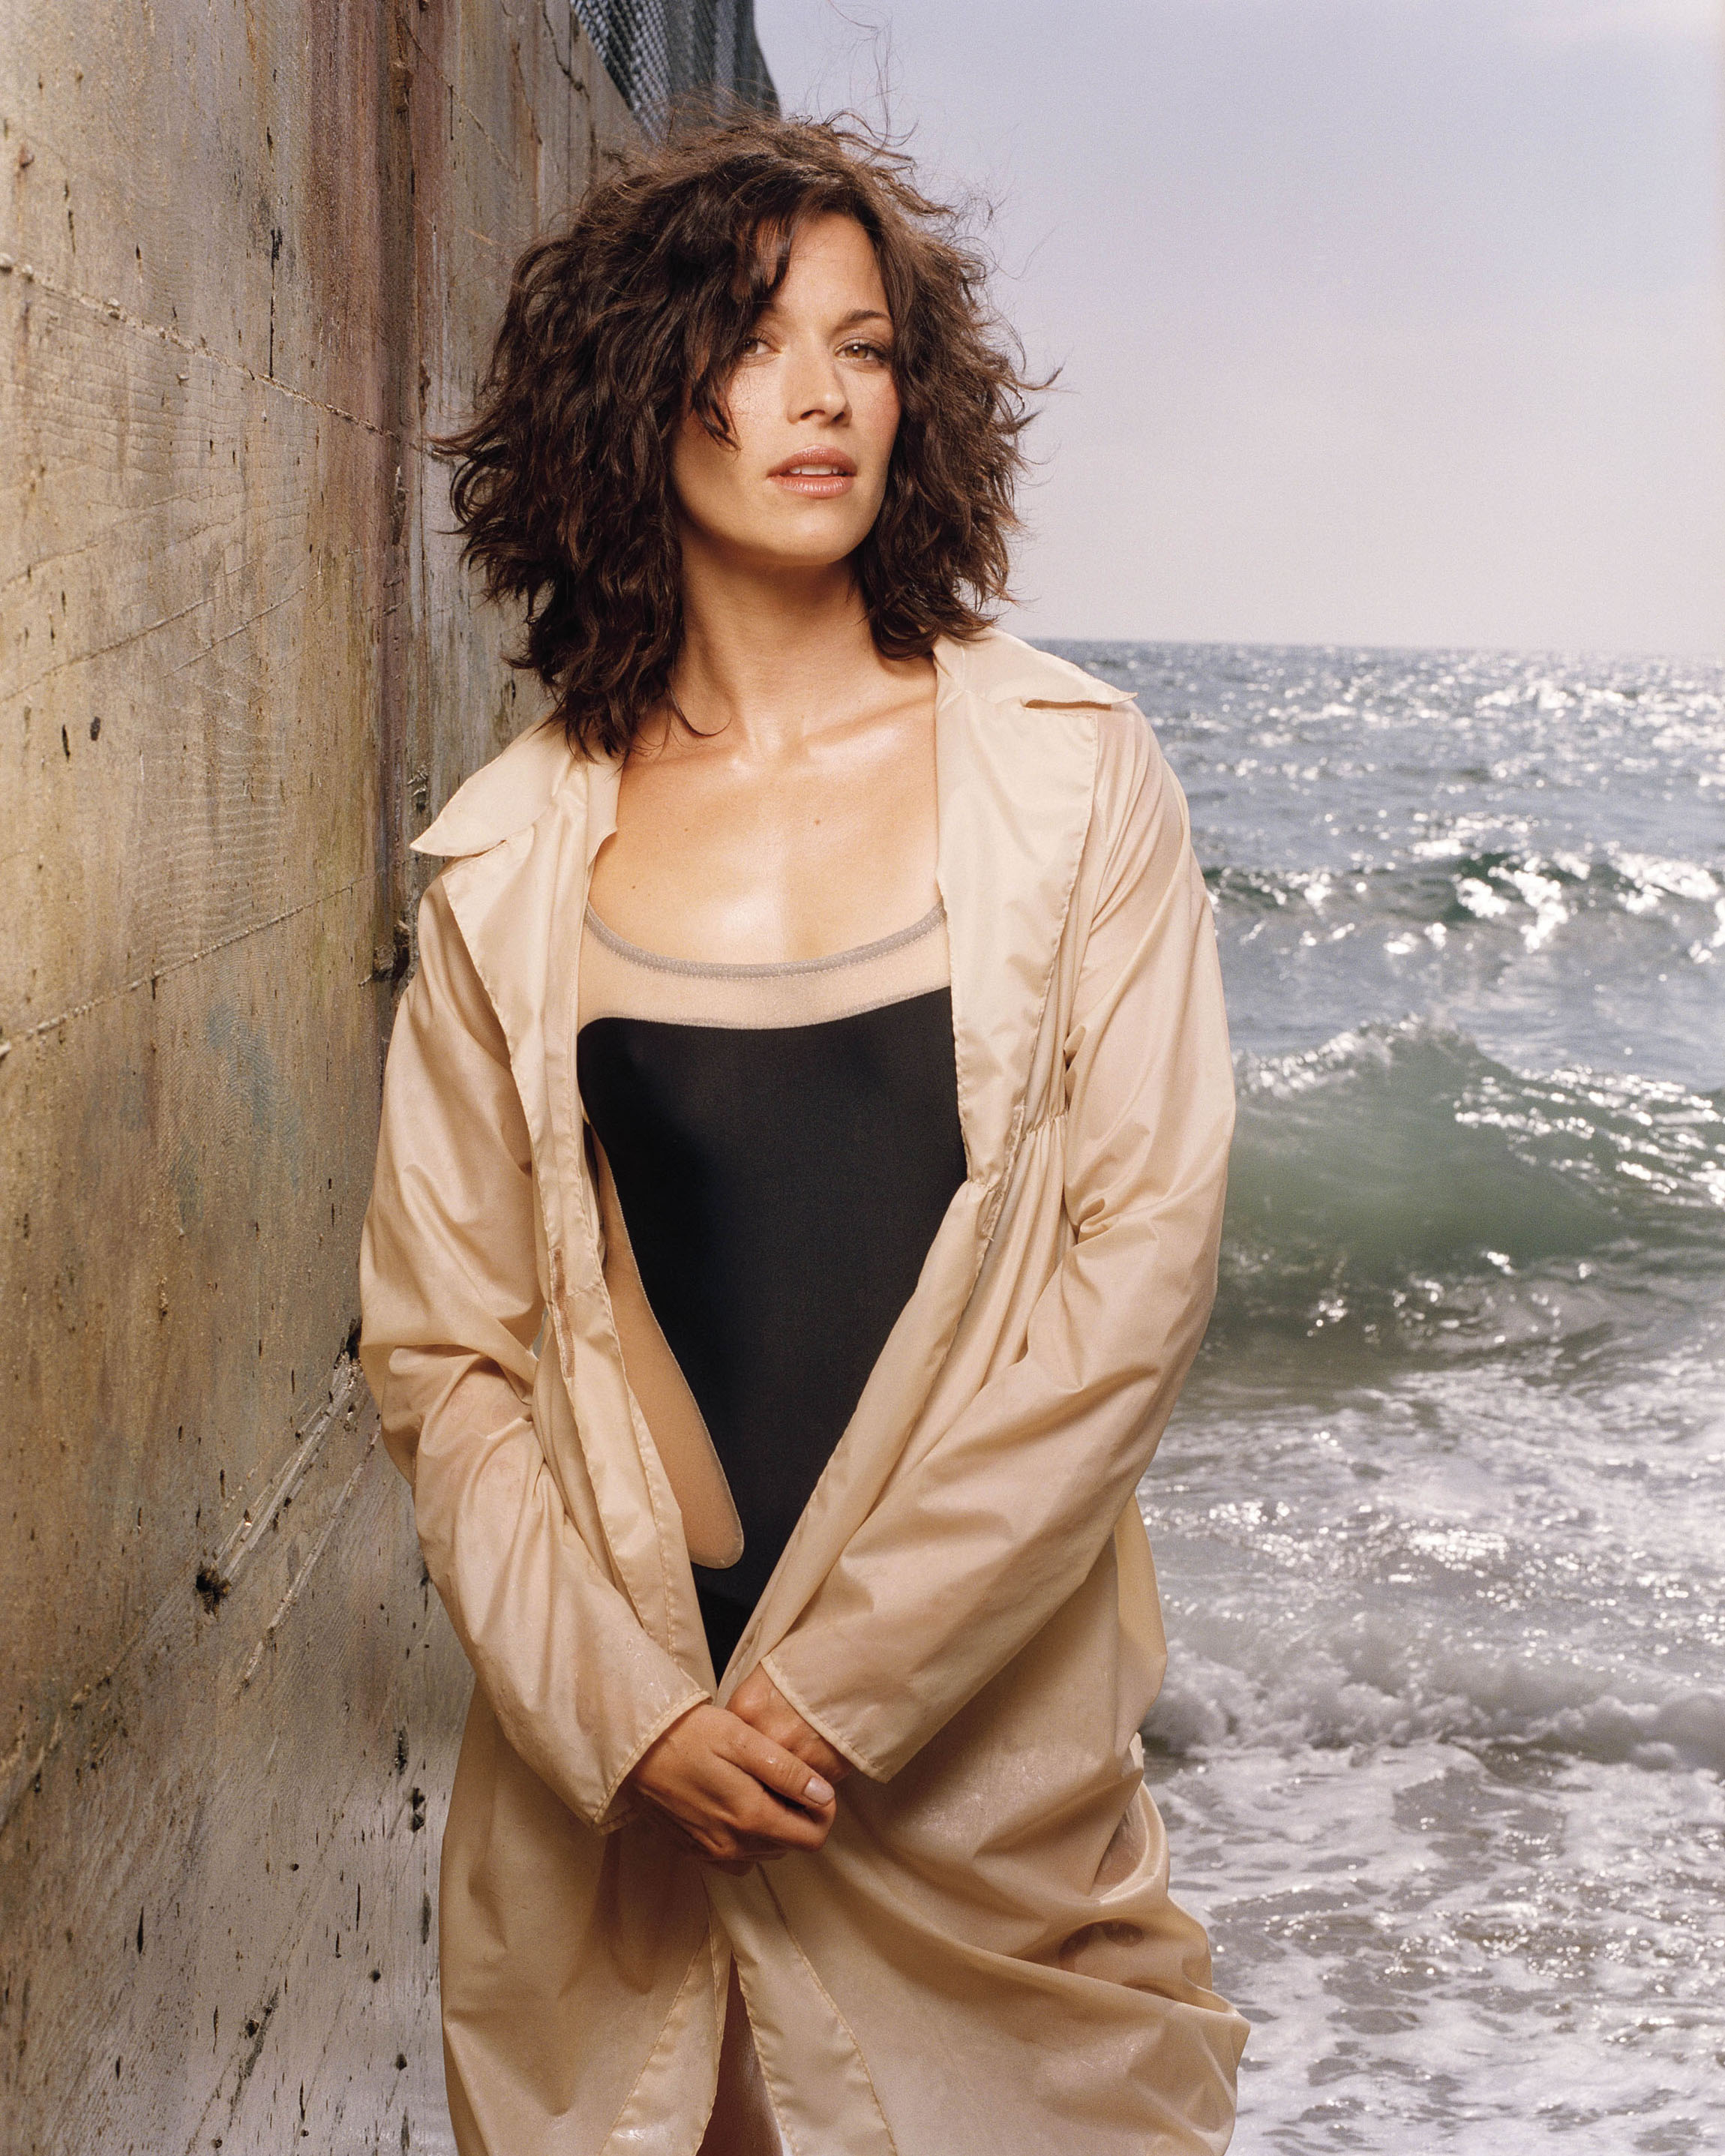 Brooke Langton photo #115160